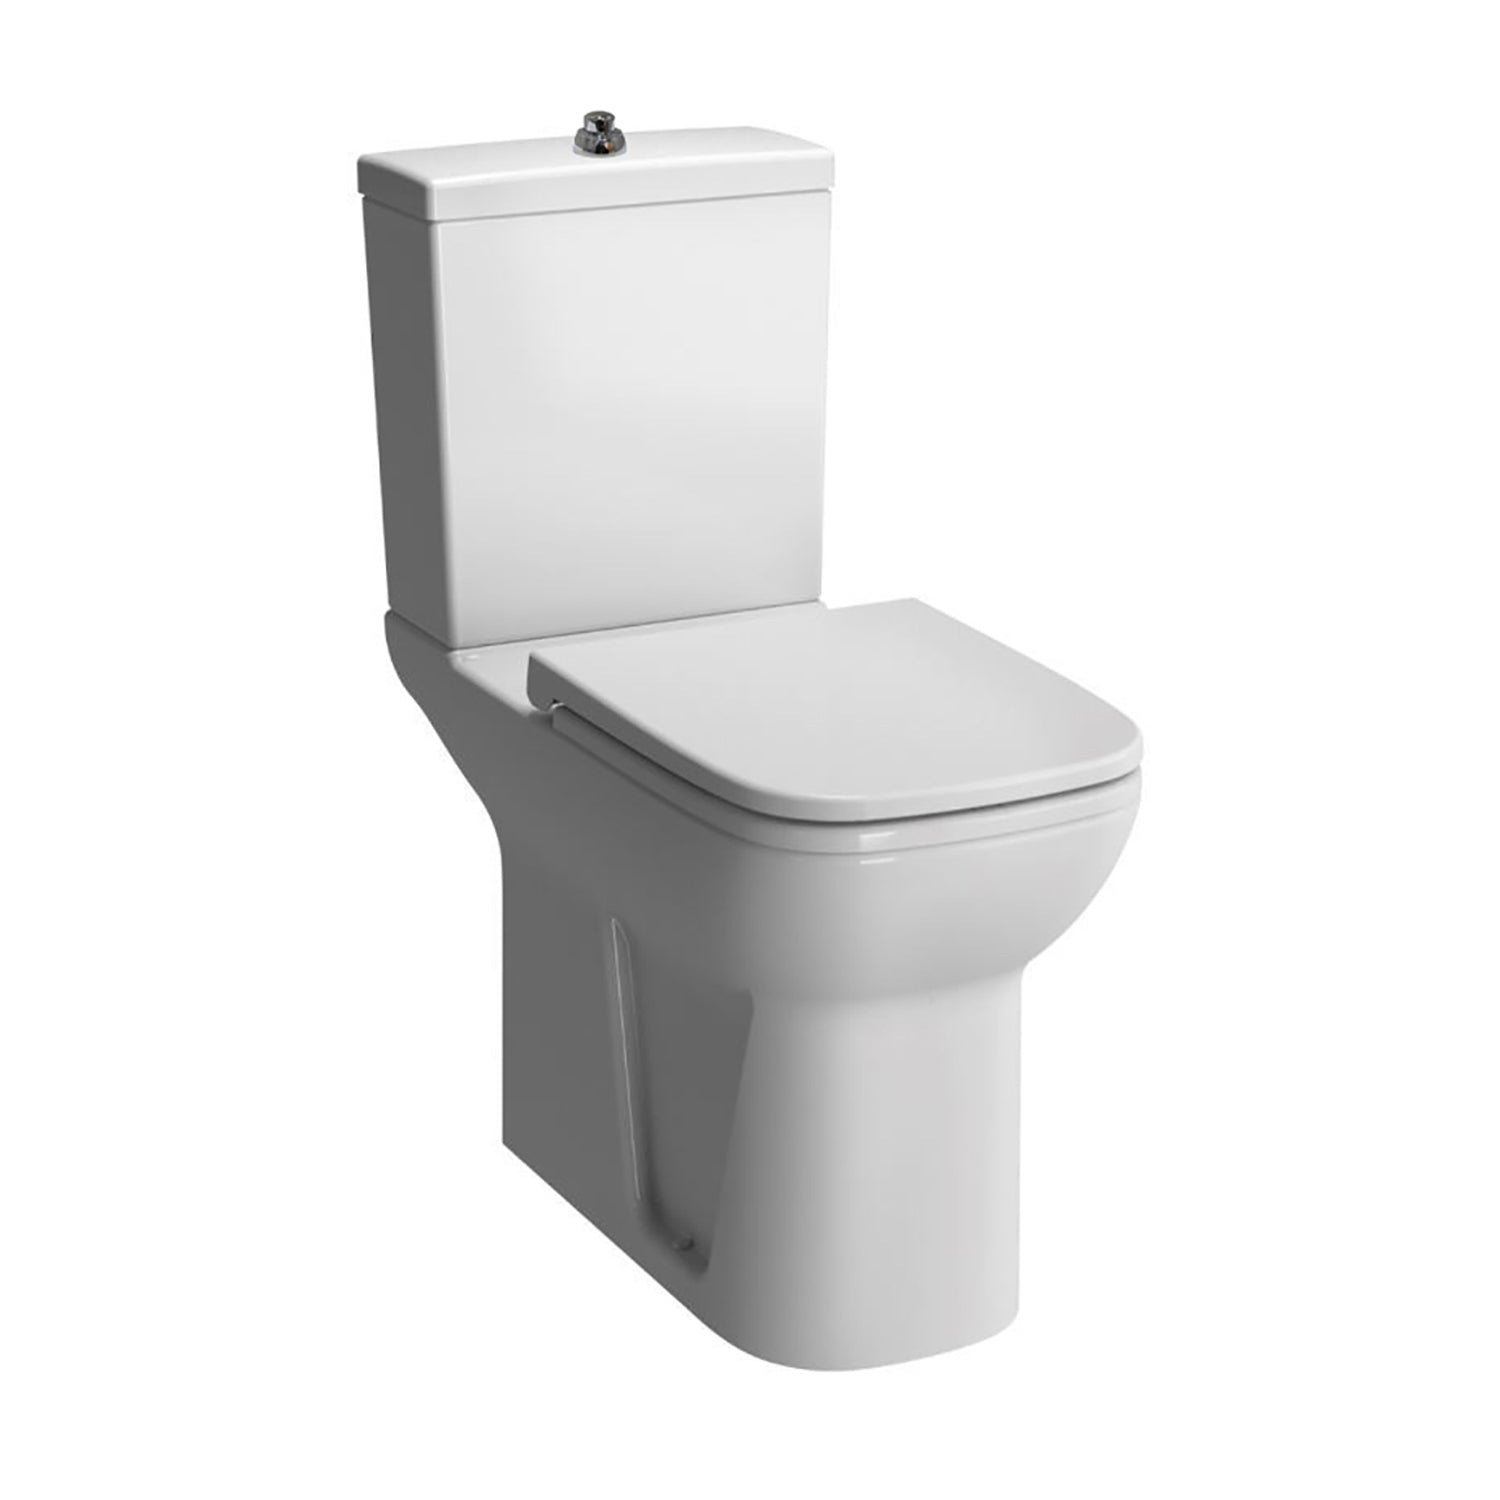 Consilio Comfort Height Close Coupled Toilet on a white background